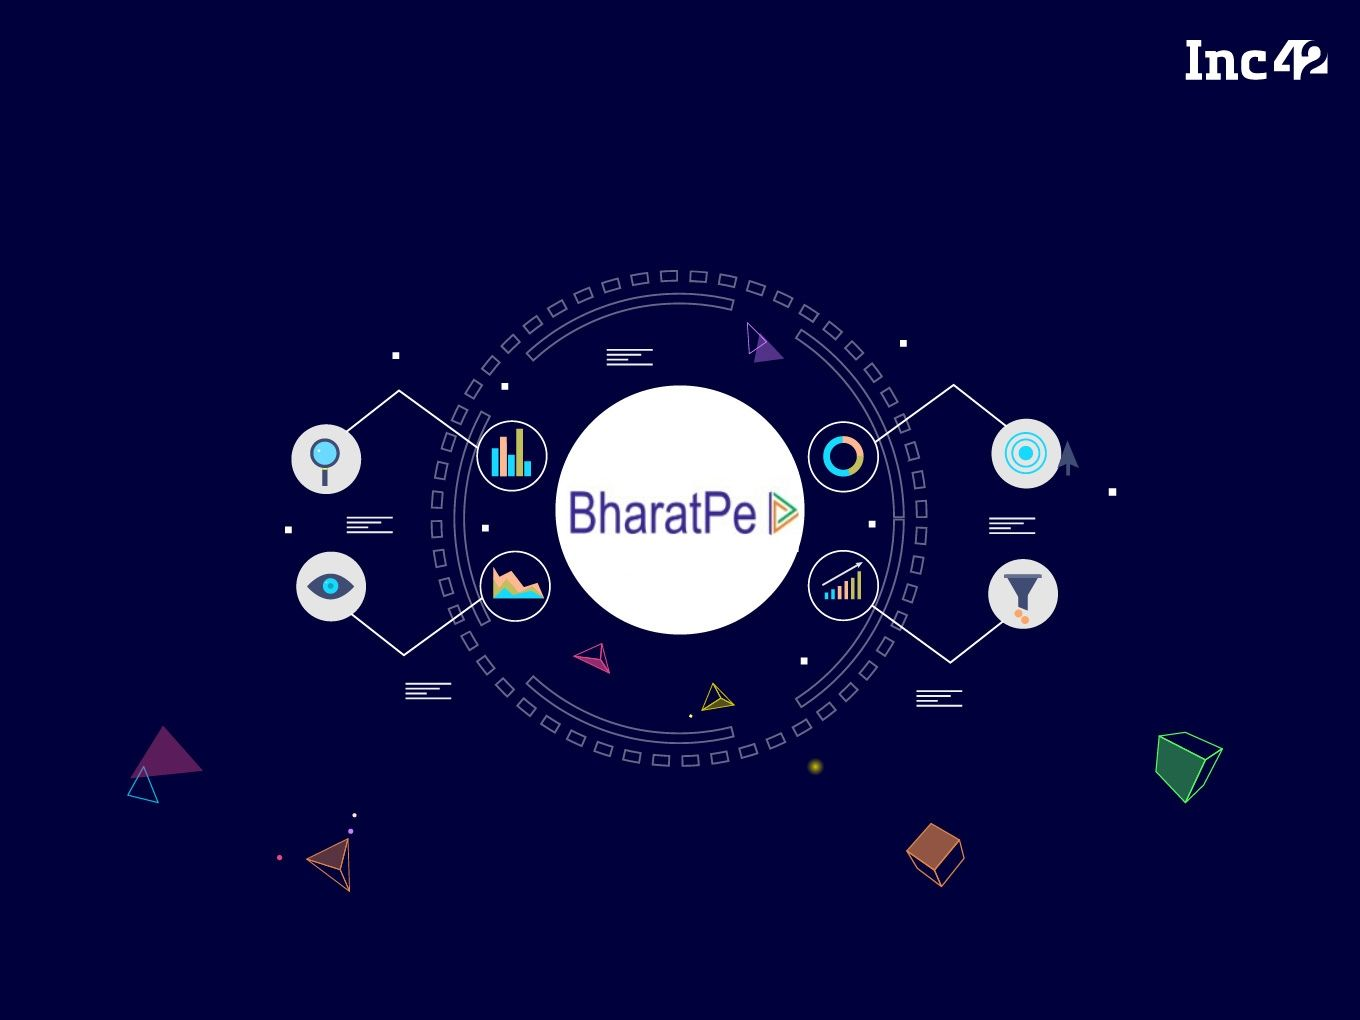 [What The Financials] With $68 Mn In Bank, Bharatpe Shows No Revenue In First Year